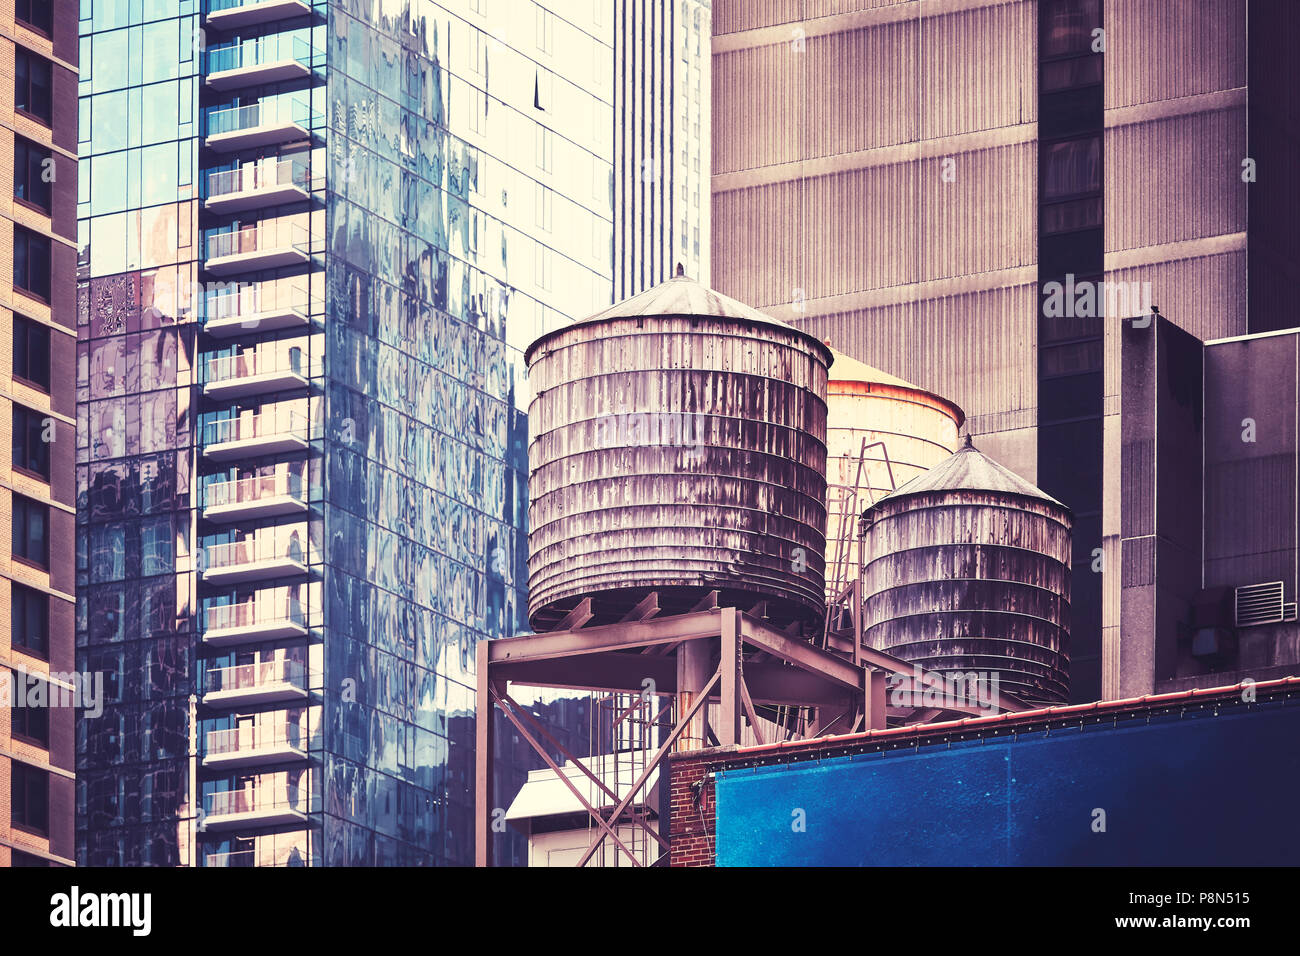 Water tanks on a roof, one of the New York City symbols, color toned picture, USA. - Stock Image